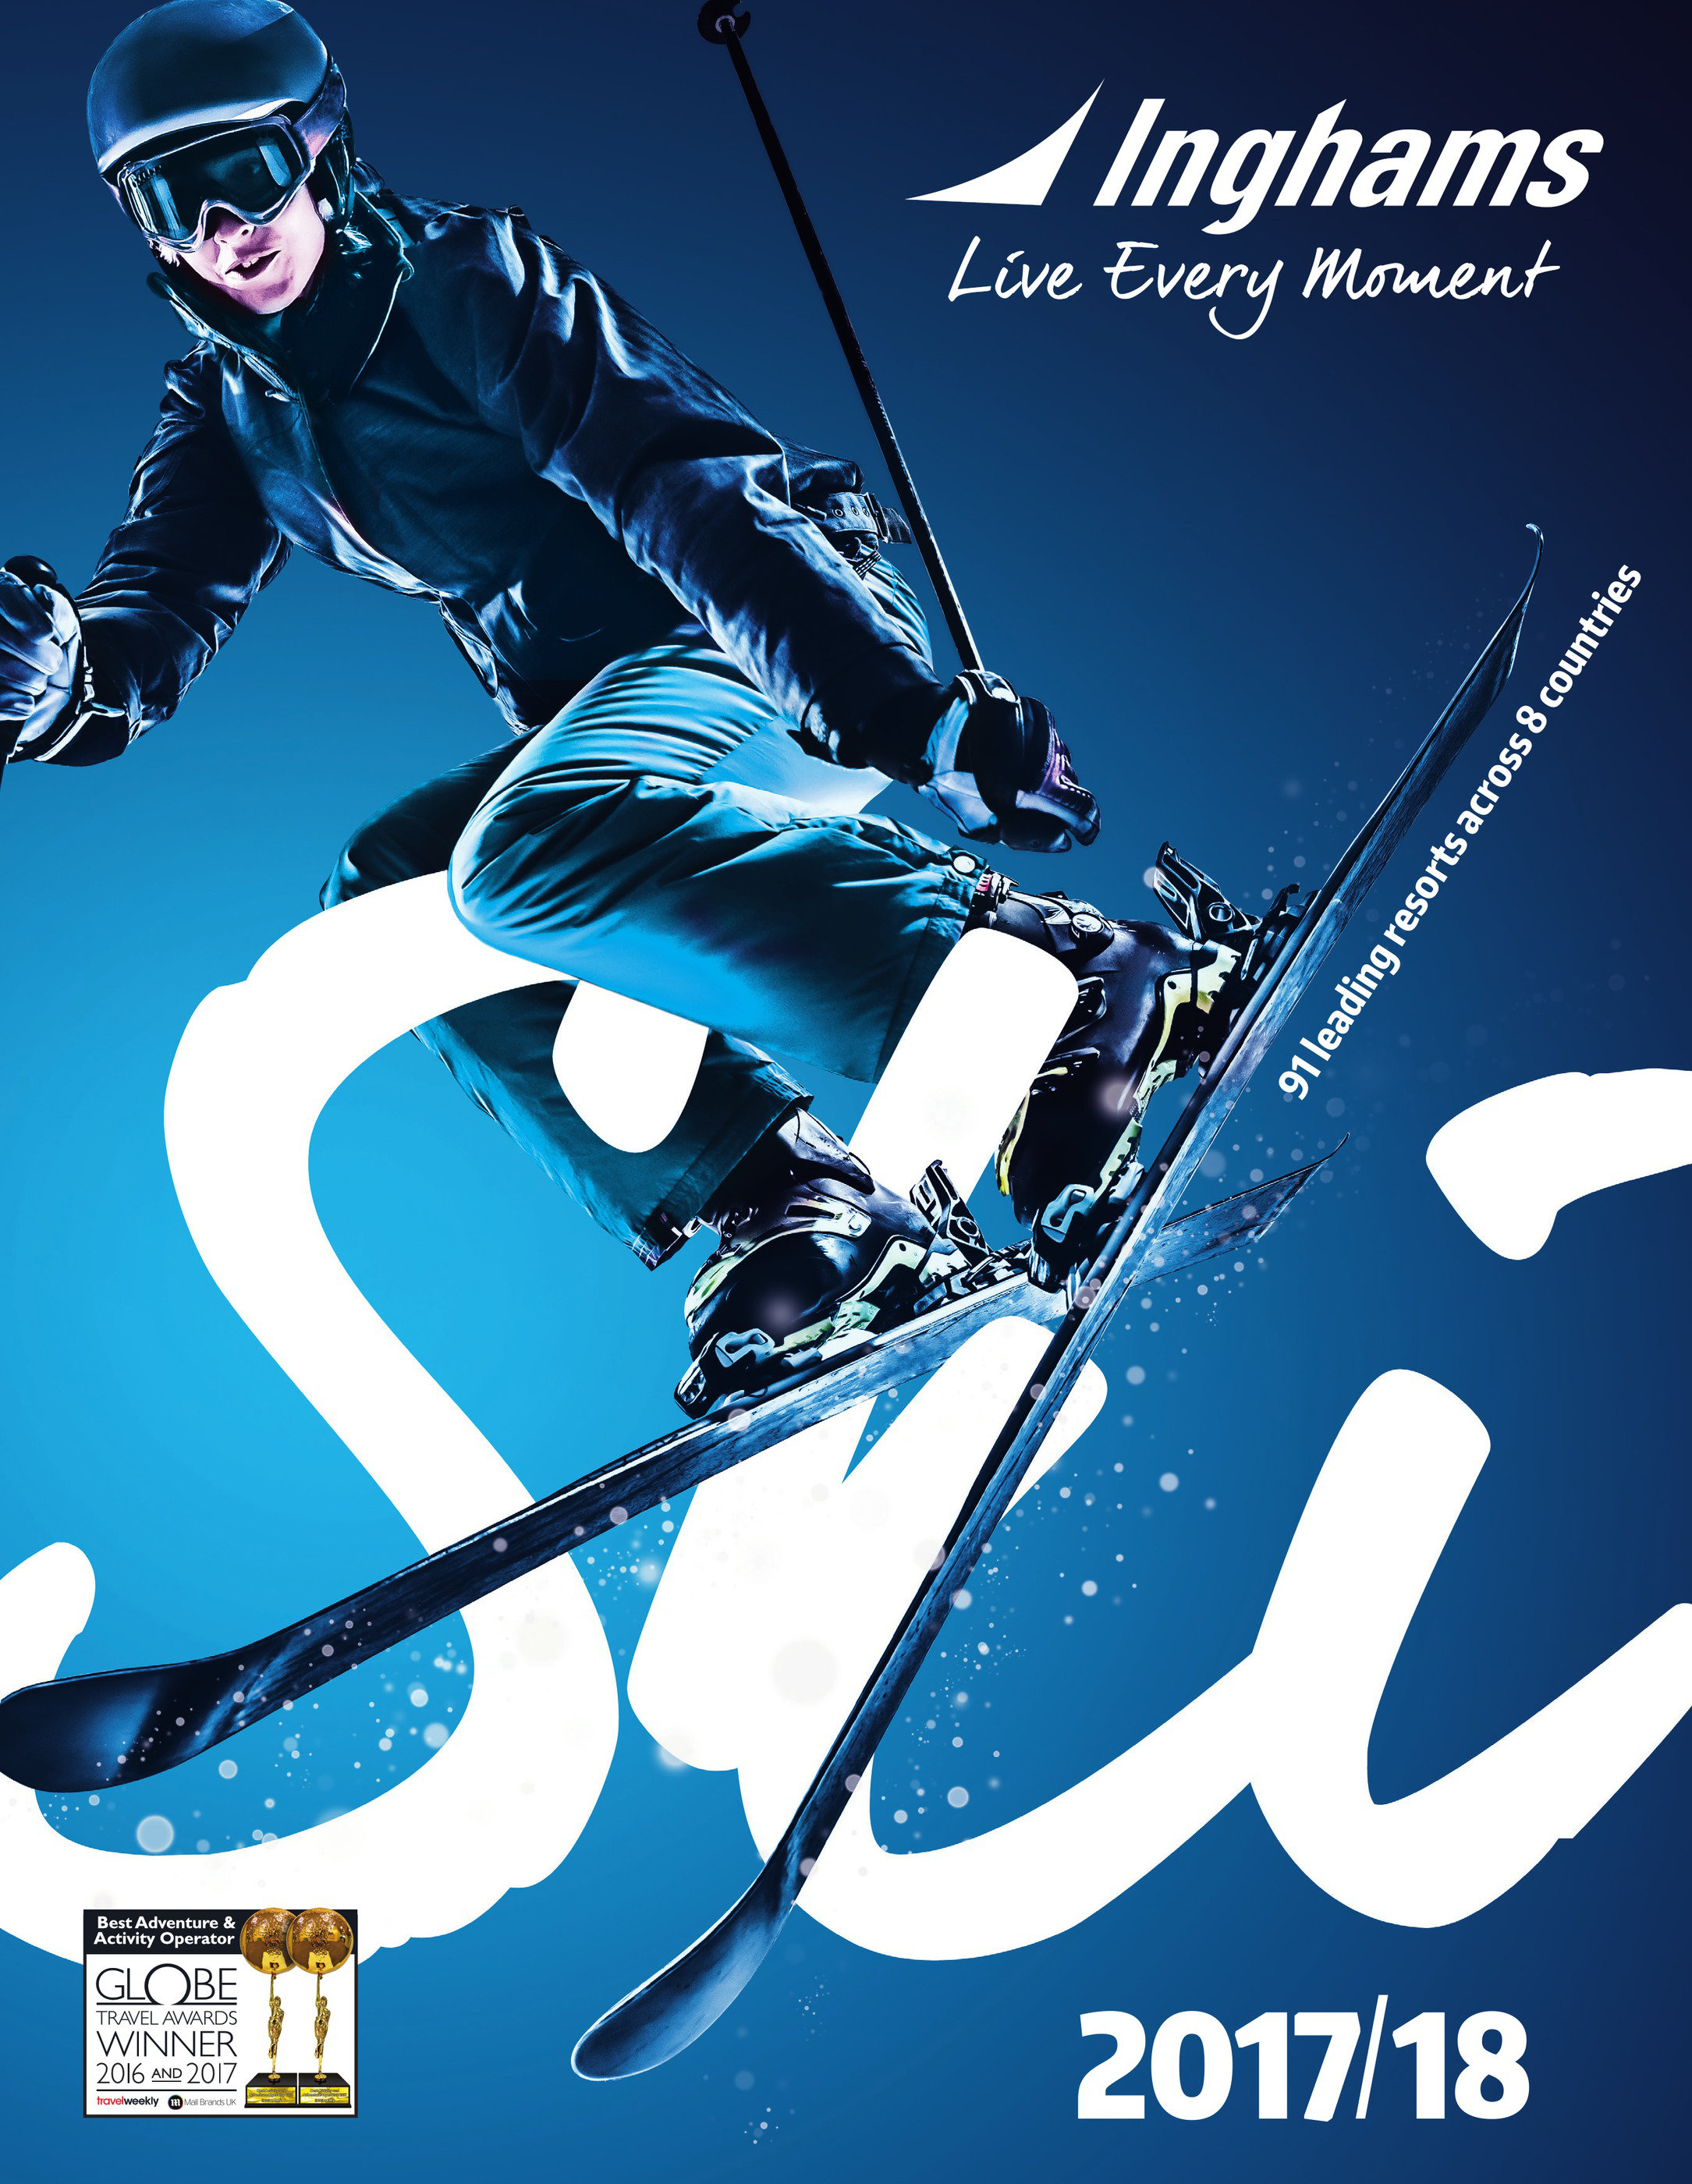 inghams ski, snowboarding live every moment brochure